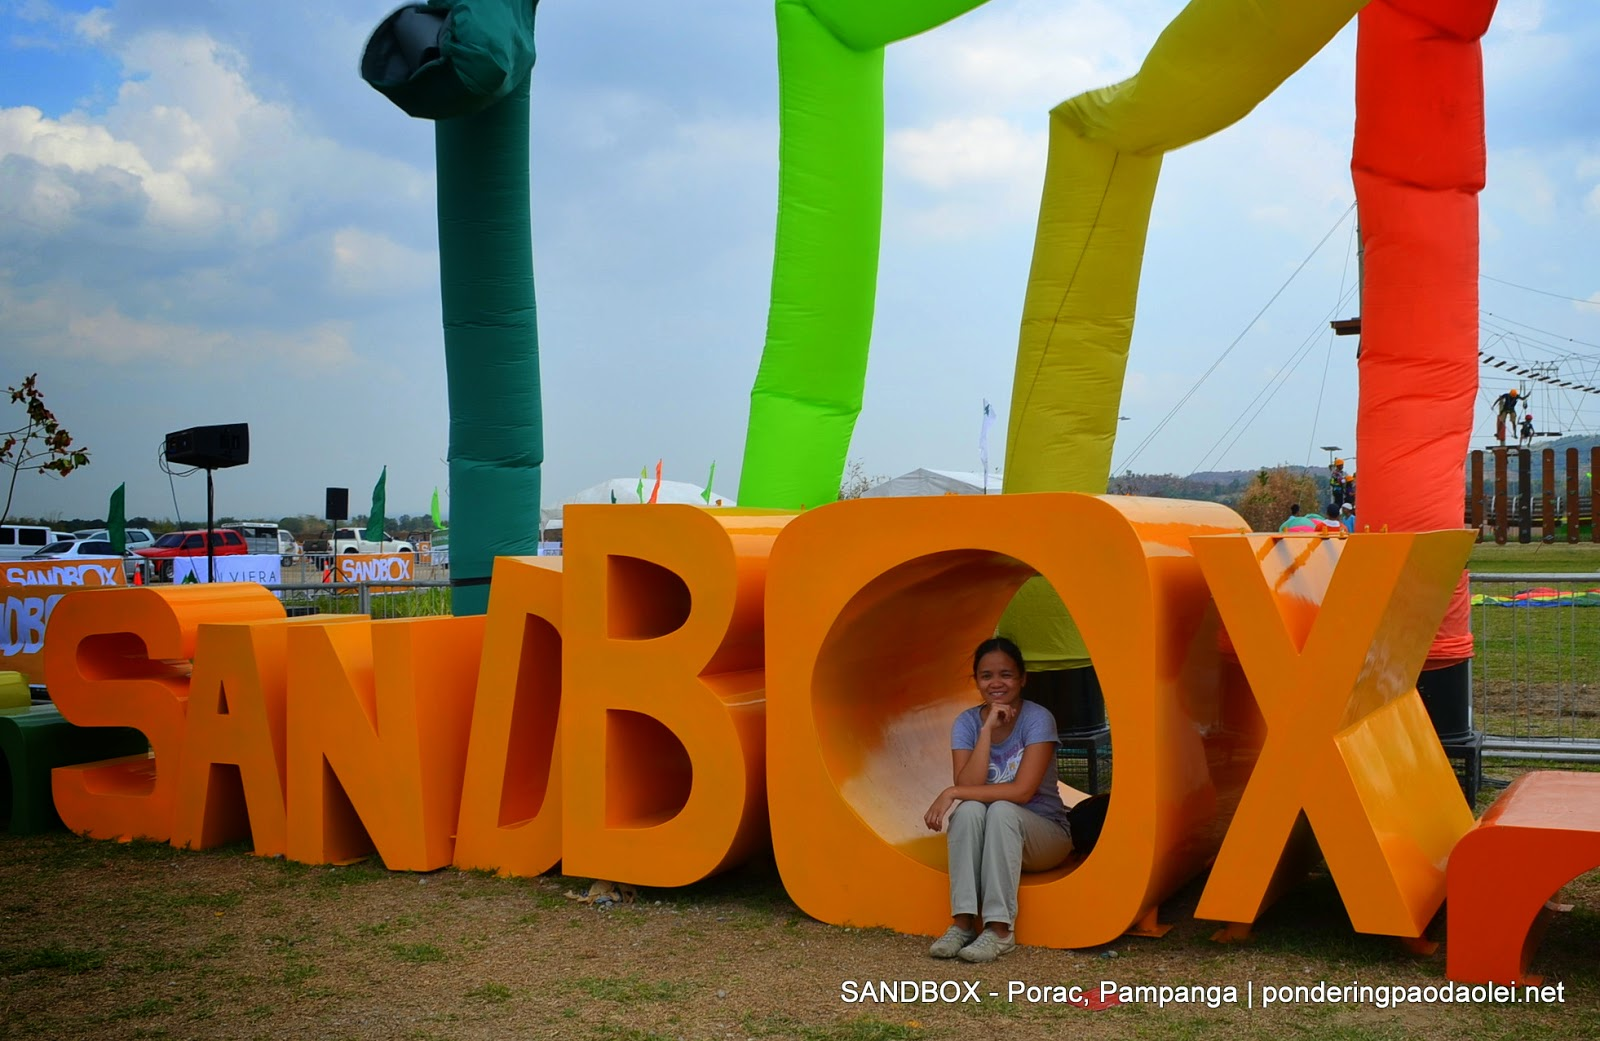 Adventure-filled Day at the Sandbox by Alviera